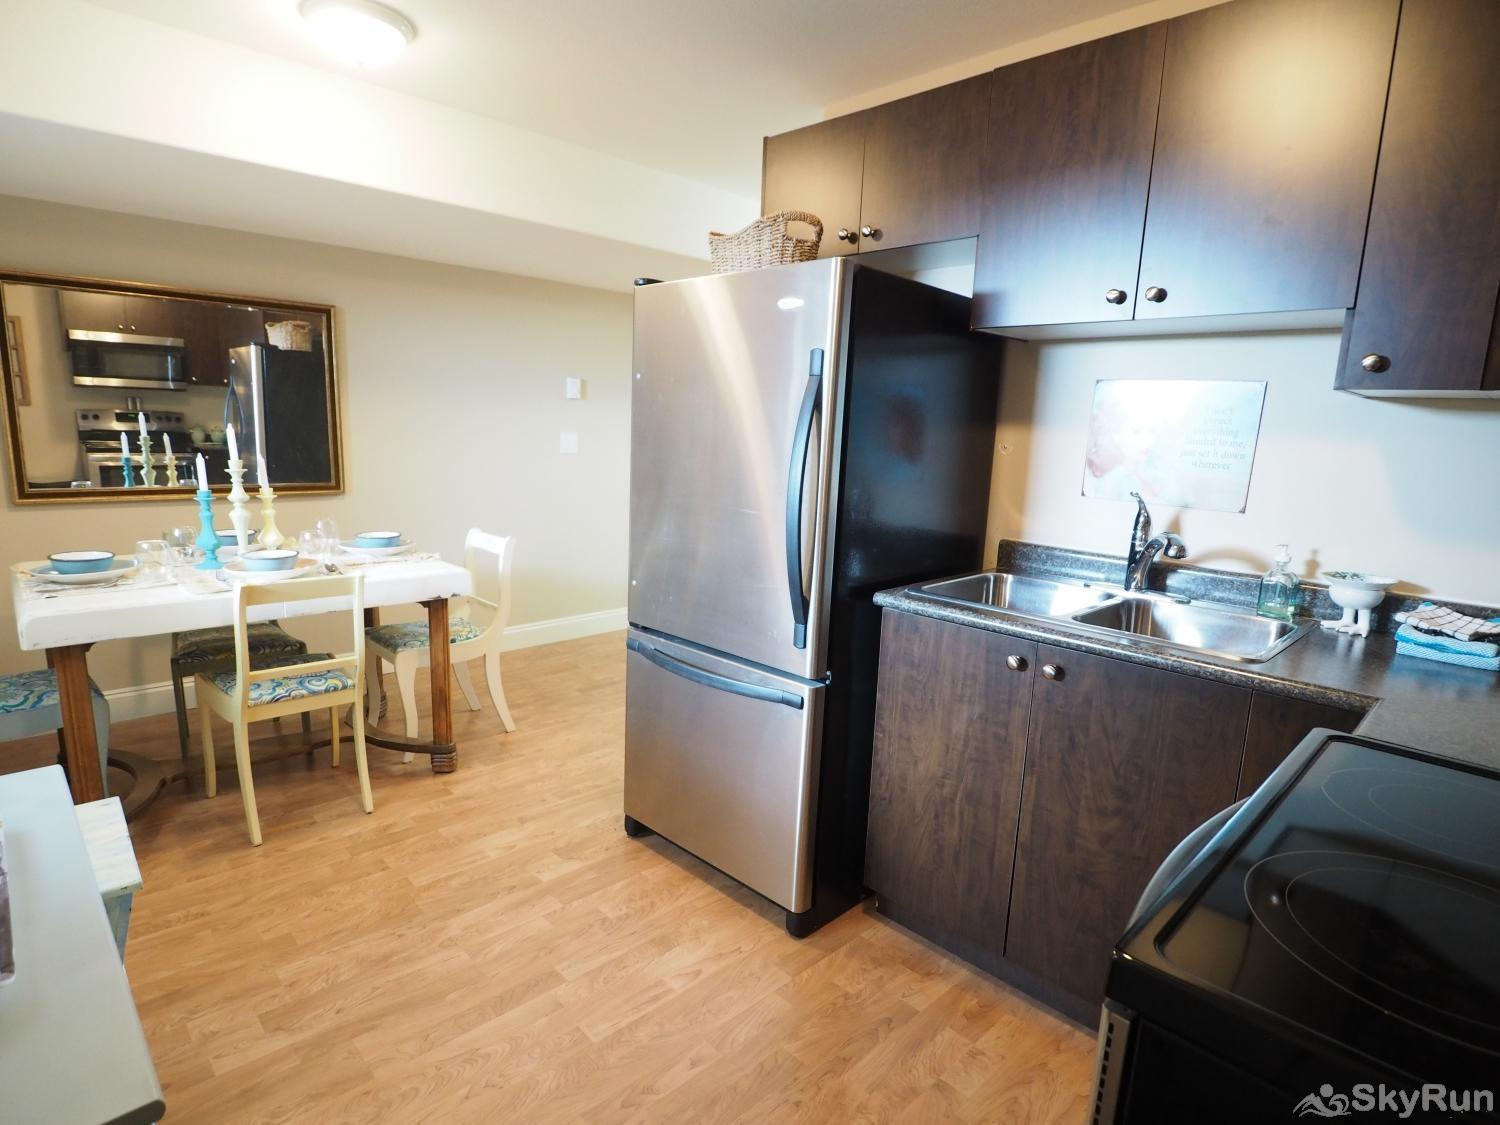 Old Summerland 1 bedroom suite Cute eating area off the kitchen